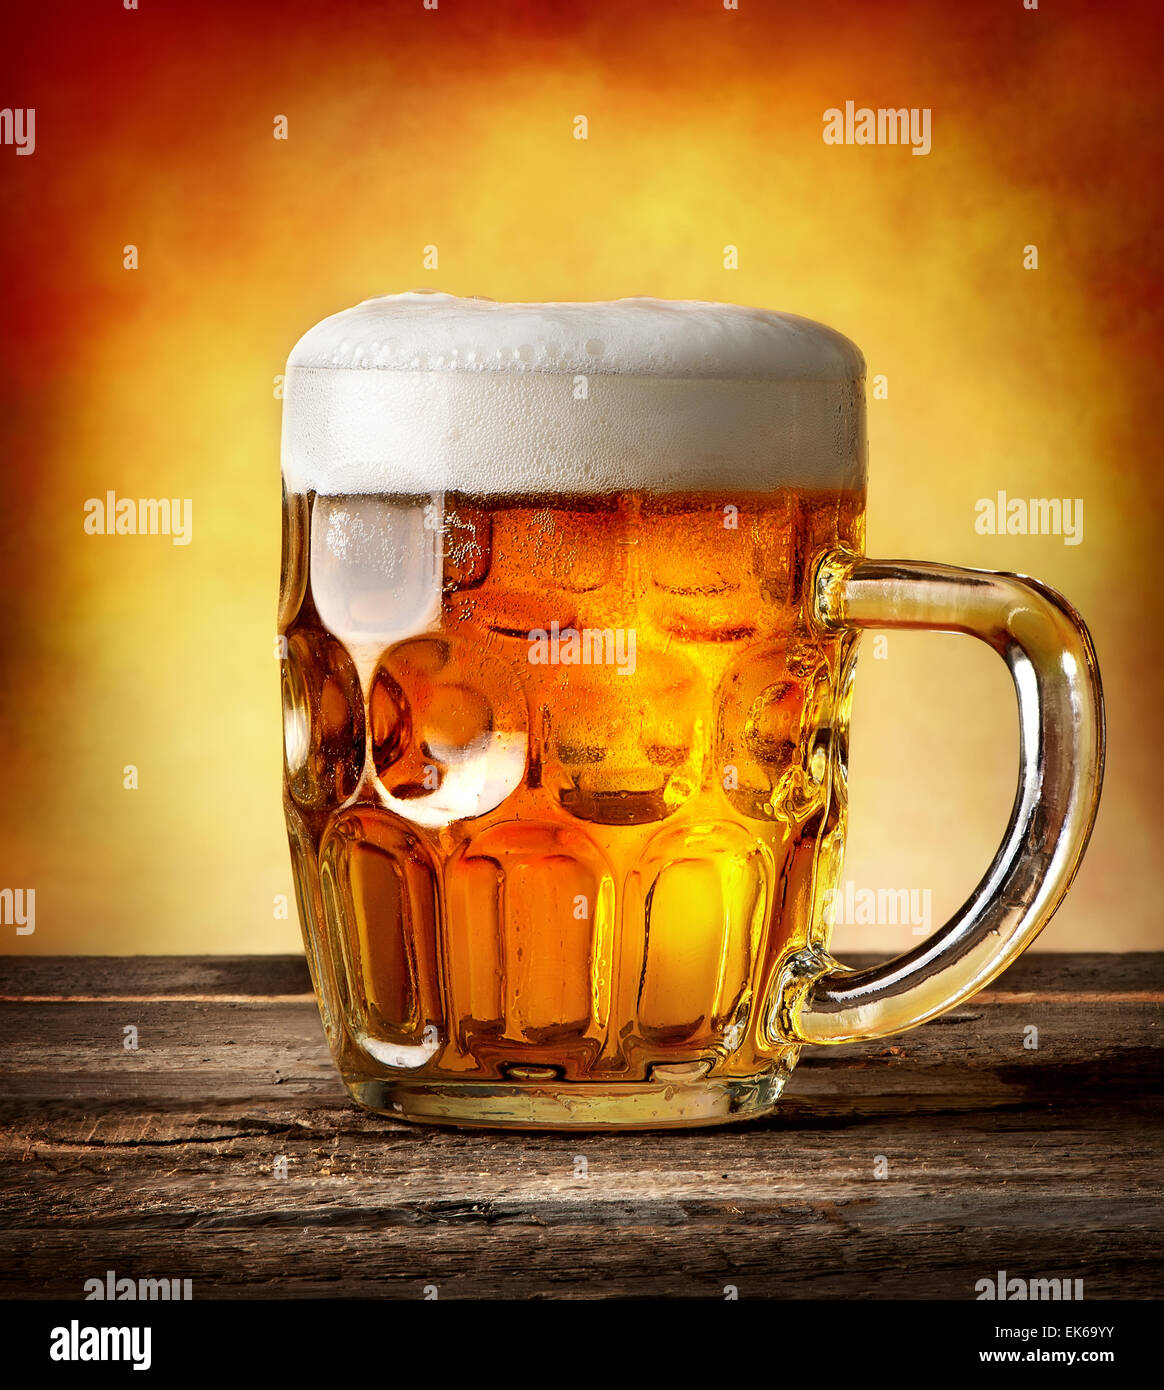 Figured mug of beer on a wooden table Stock Photo